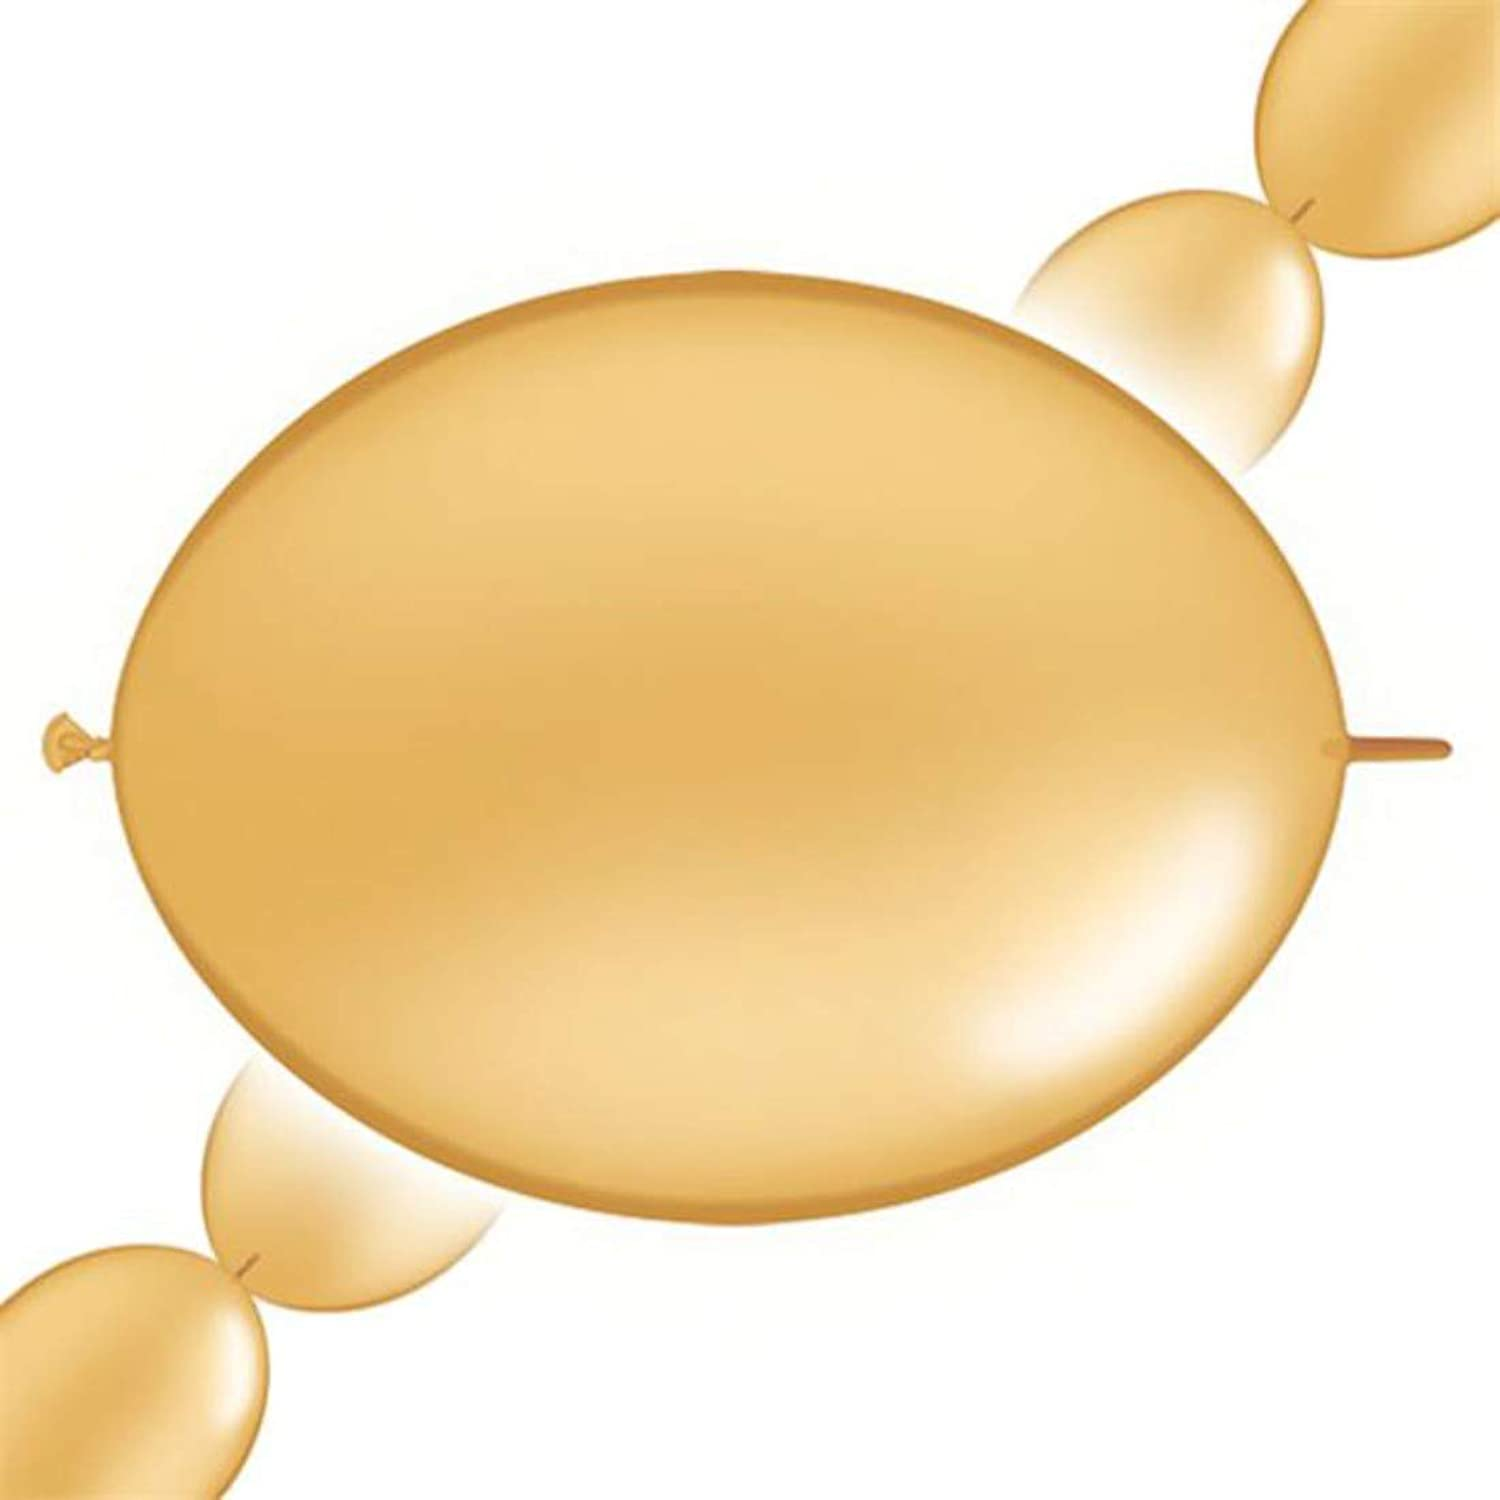 Pioneer Balloon 65245 50 Count Quick Link Latex Balloons, 12, gold by Pioneer National Latex